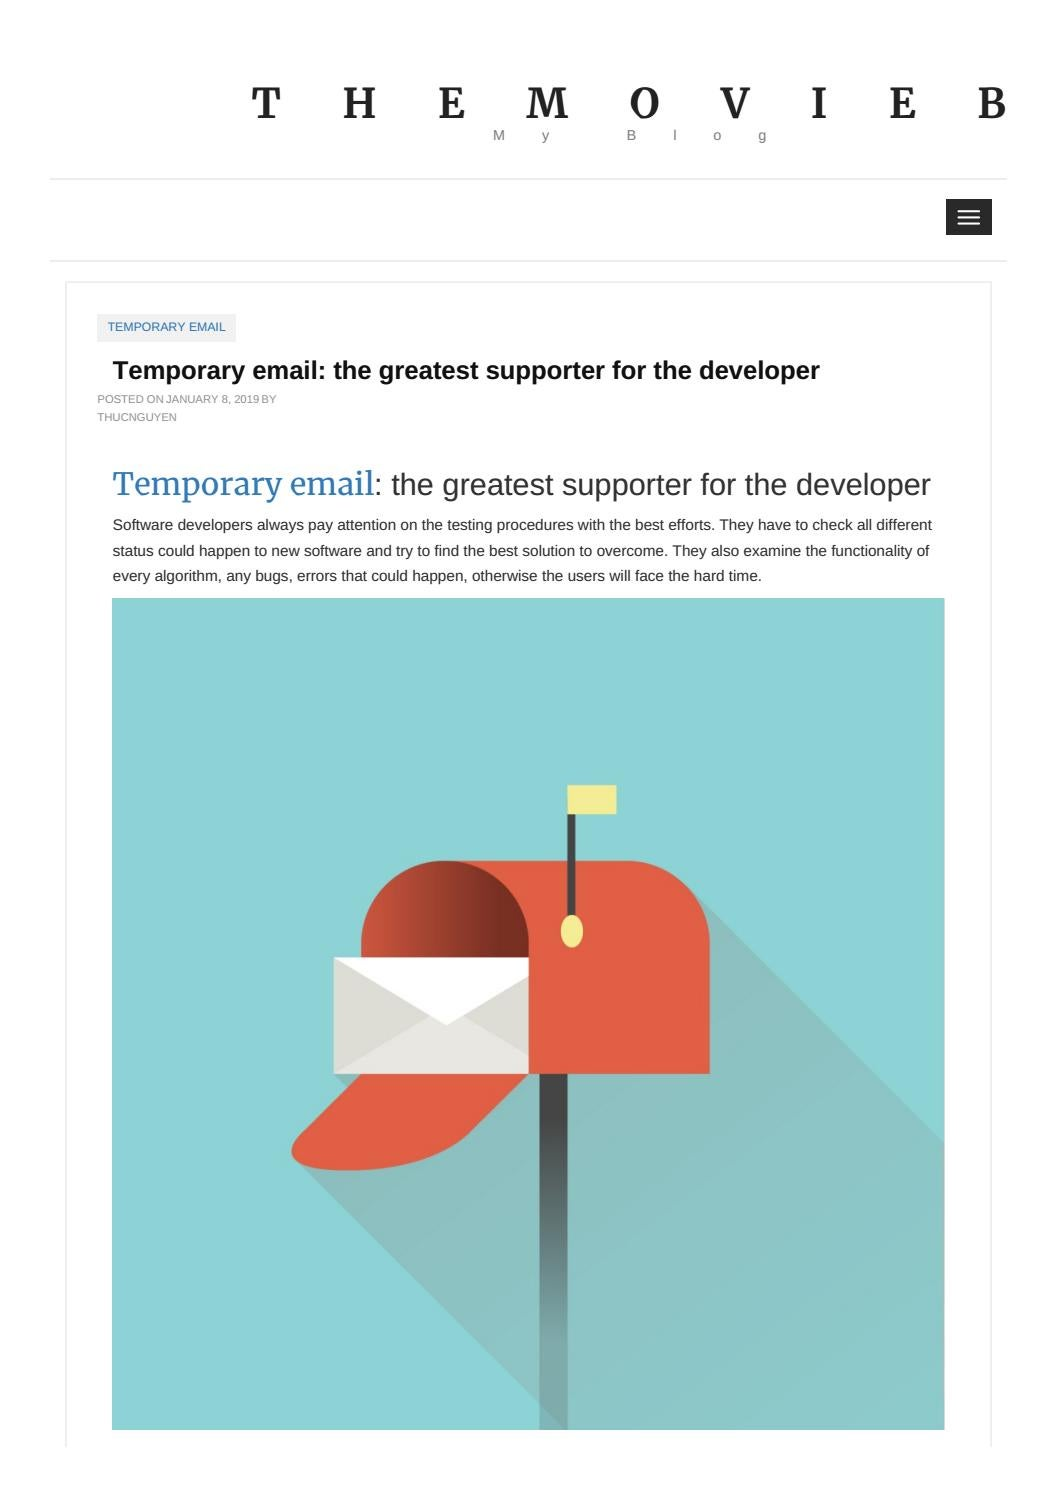 Temporary email: the greatest supporter for the developer by